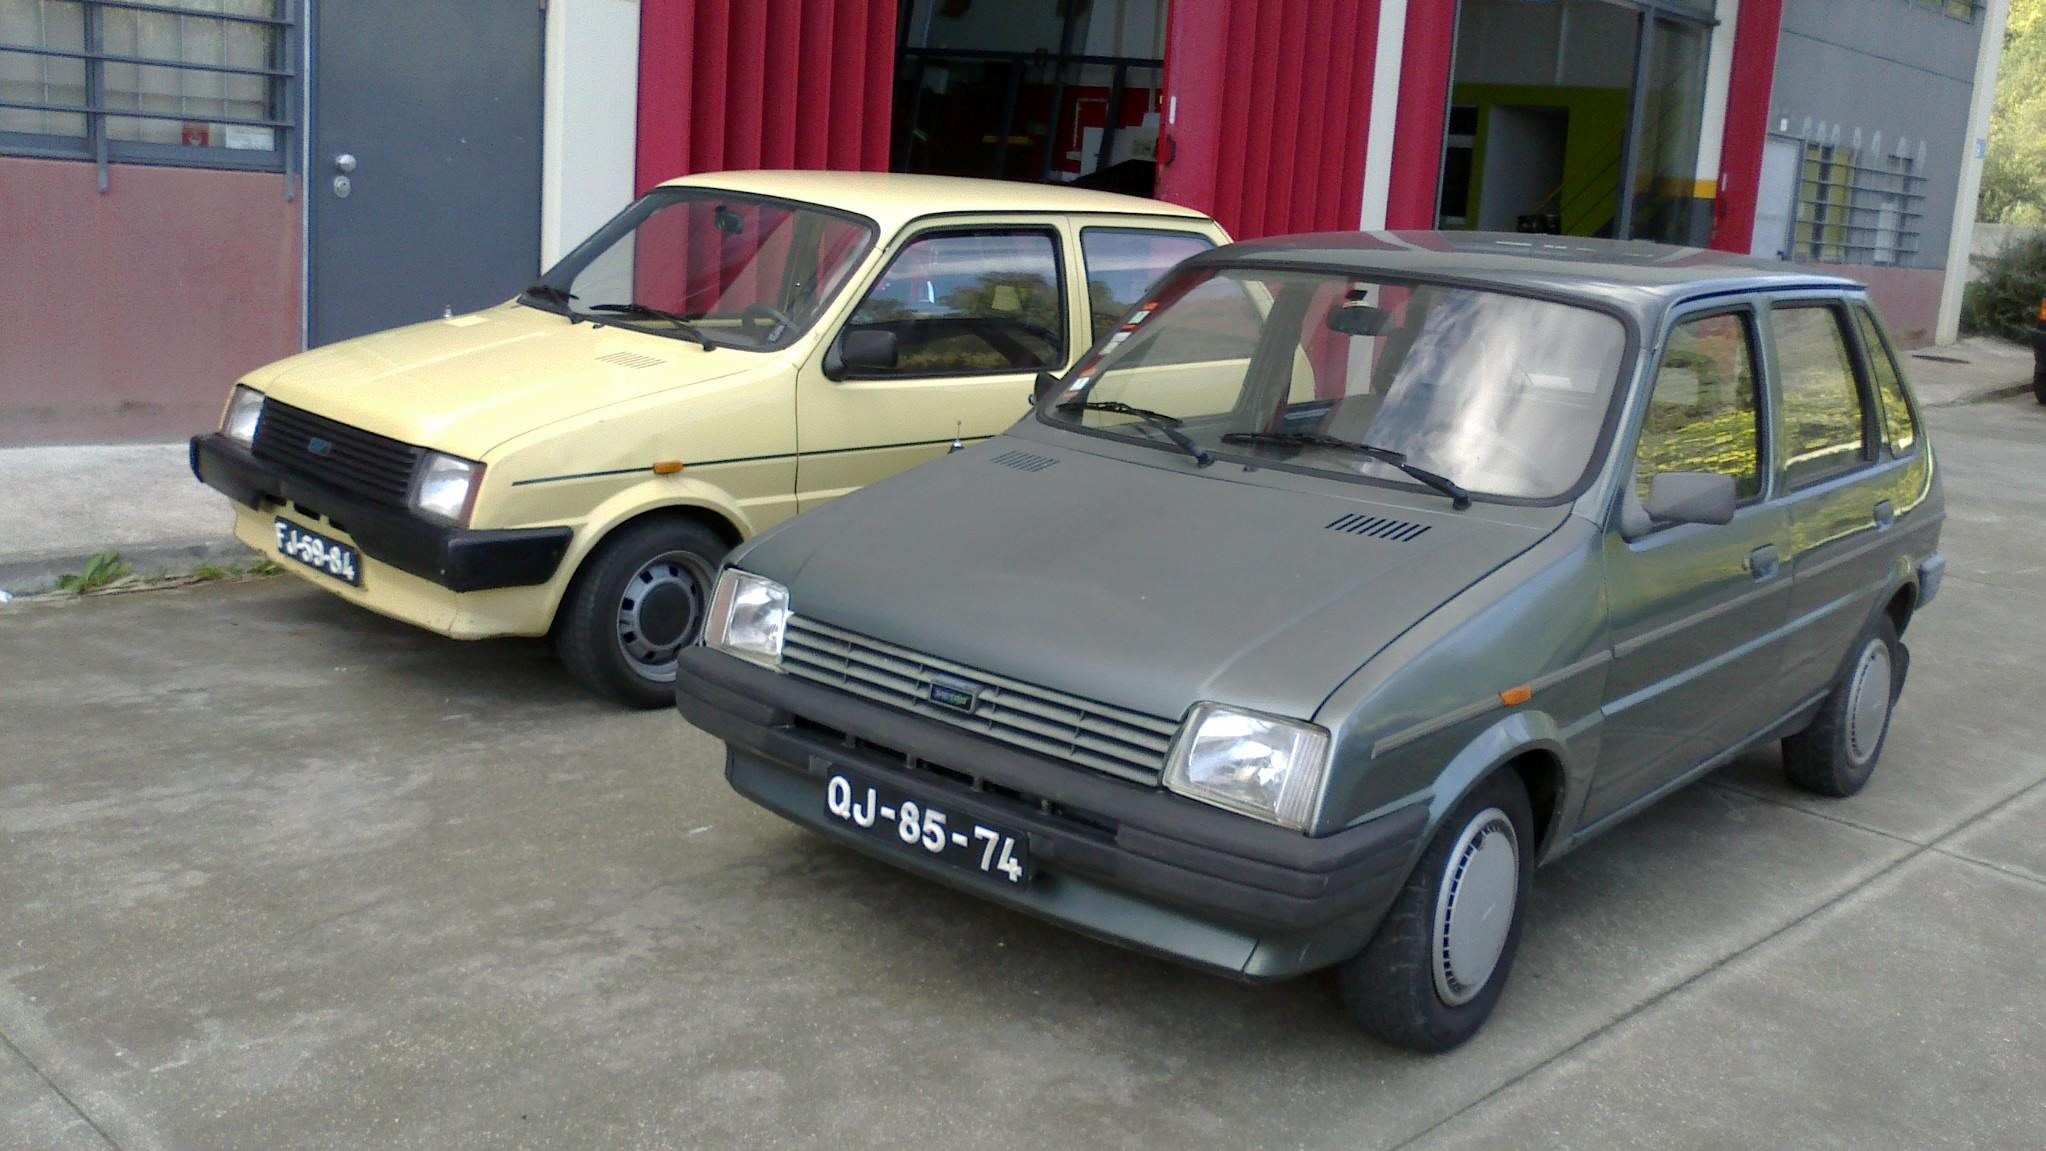 José Carlos Magalhães' Mk1 and Mk2